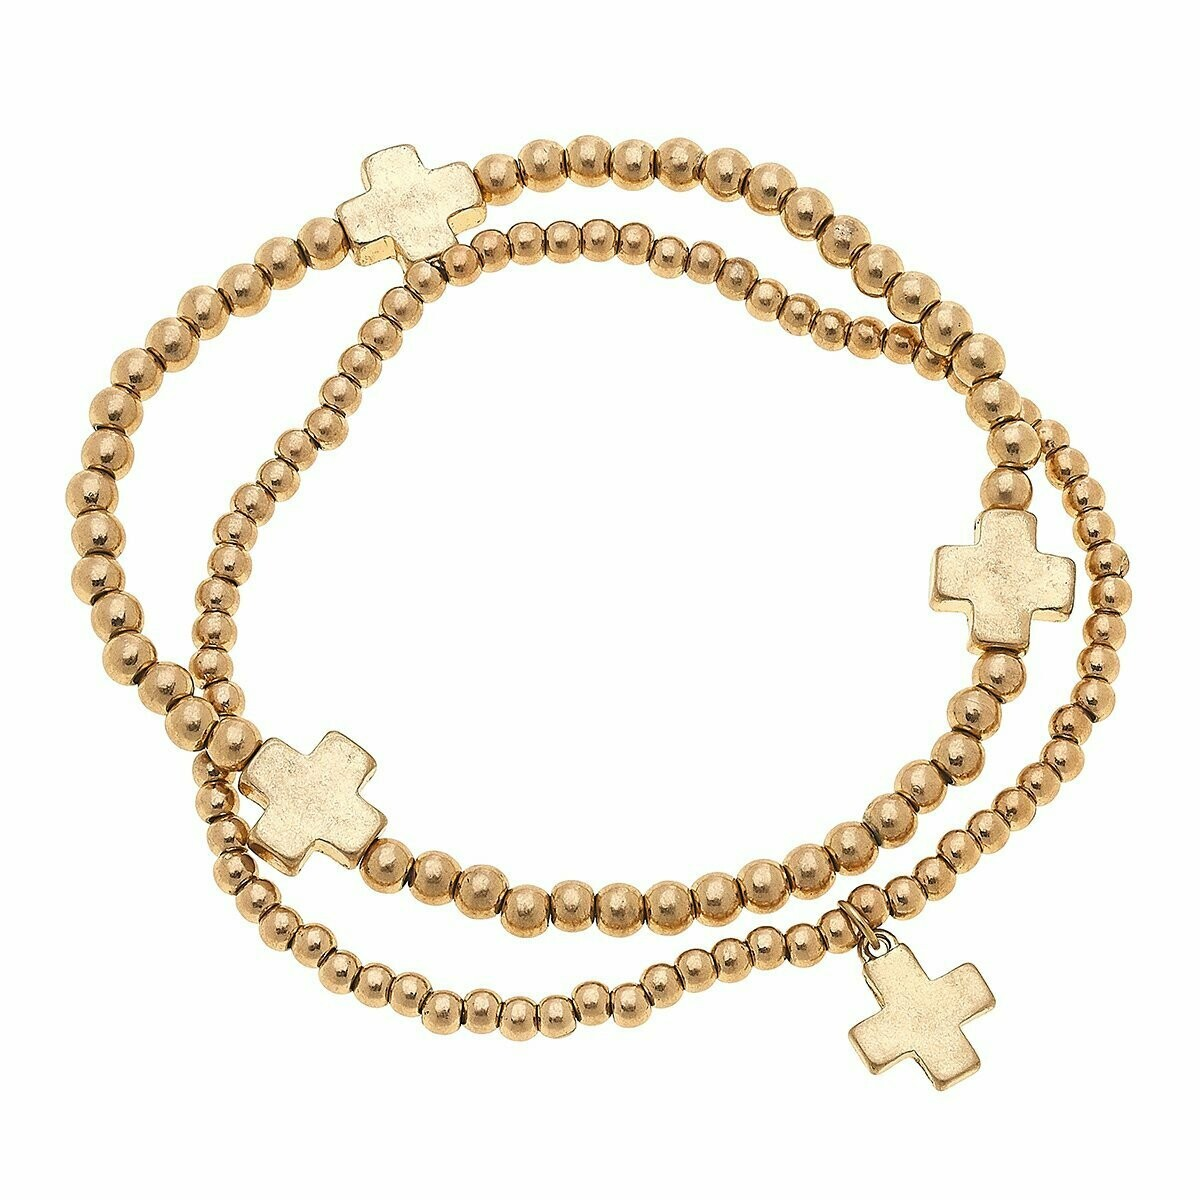 Aria Layered Ball Bead Bracelets In Worn Gold Crosses (Set of 2)